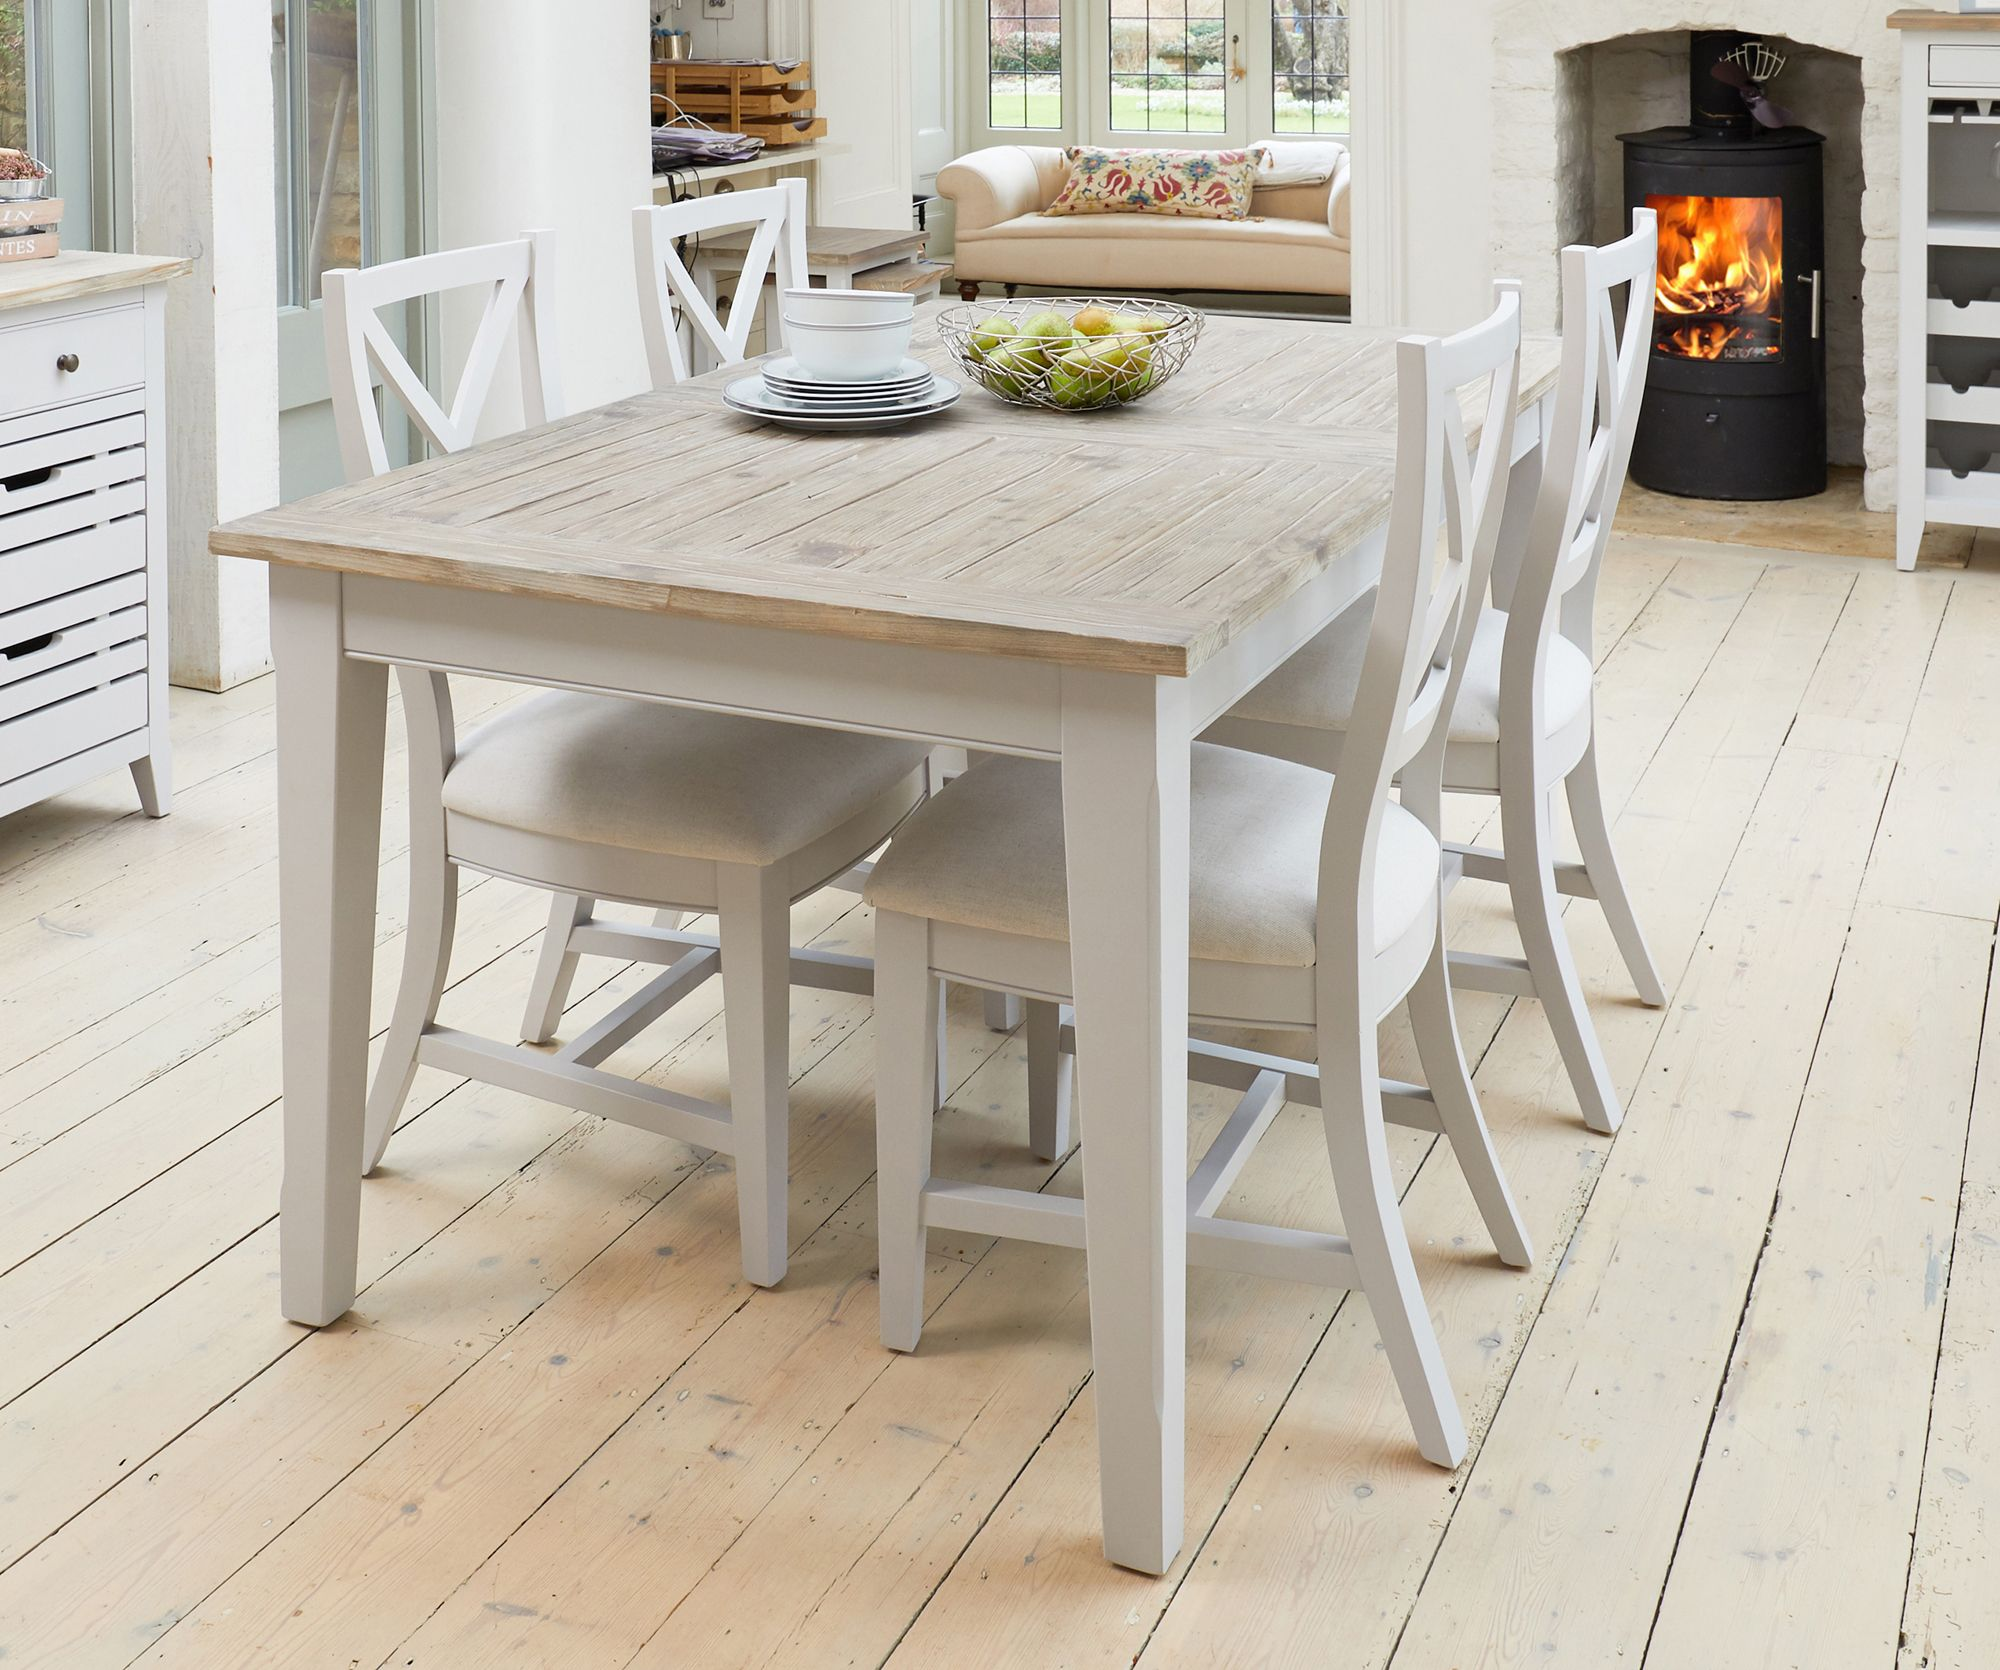 Signature Dining Set Includes A Solid Wood Extending Dining Table With A Choice Of Benches Or Chairs